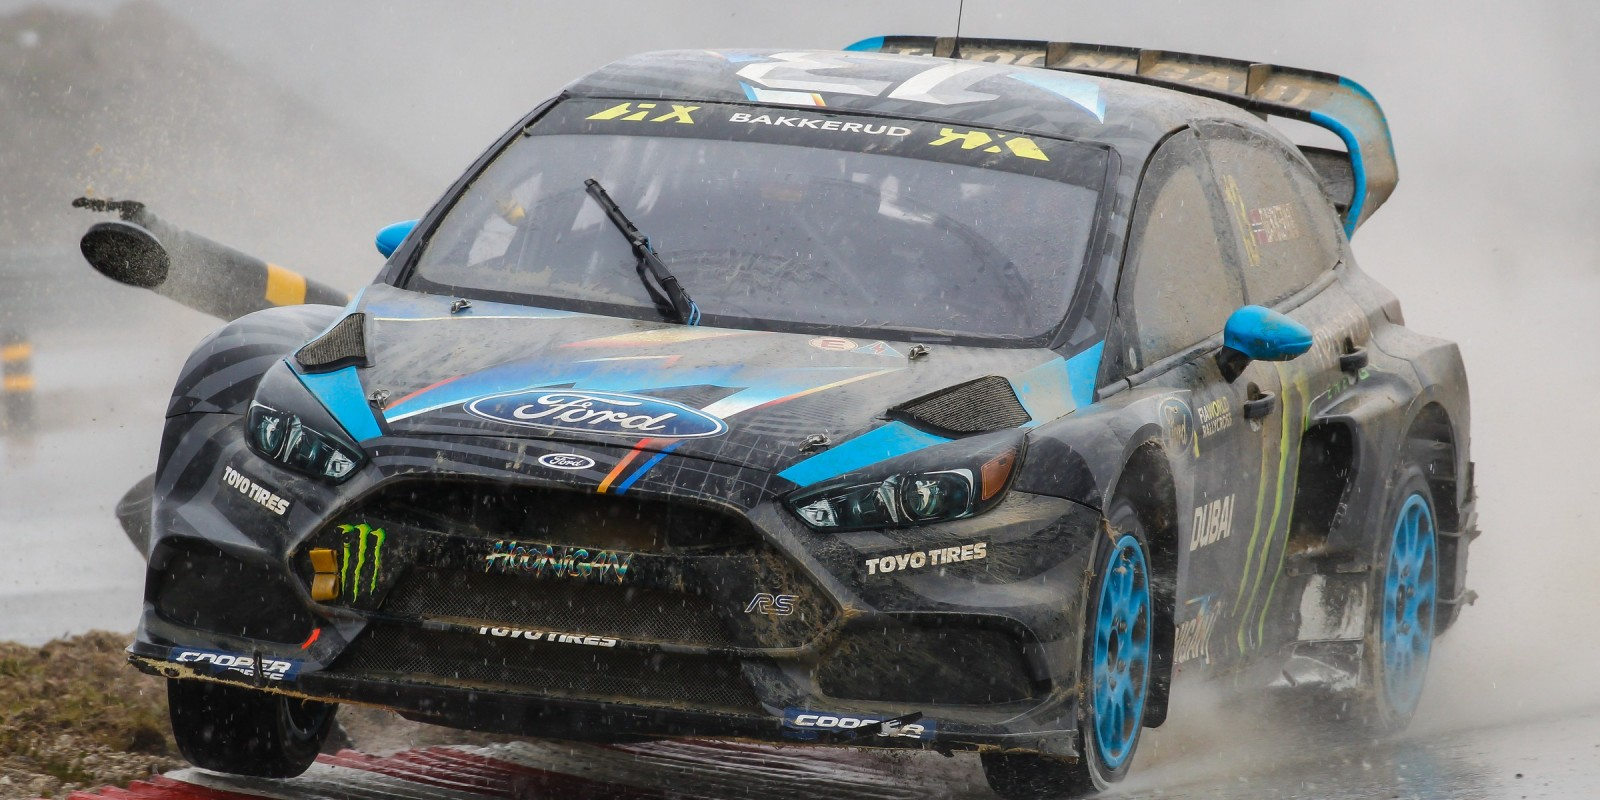 Day one / Saturday images of Andreas Bakkerud from round one of the FIA World Rallycross Championship, Round 1